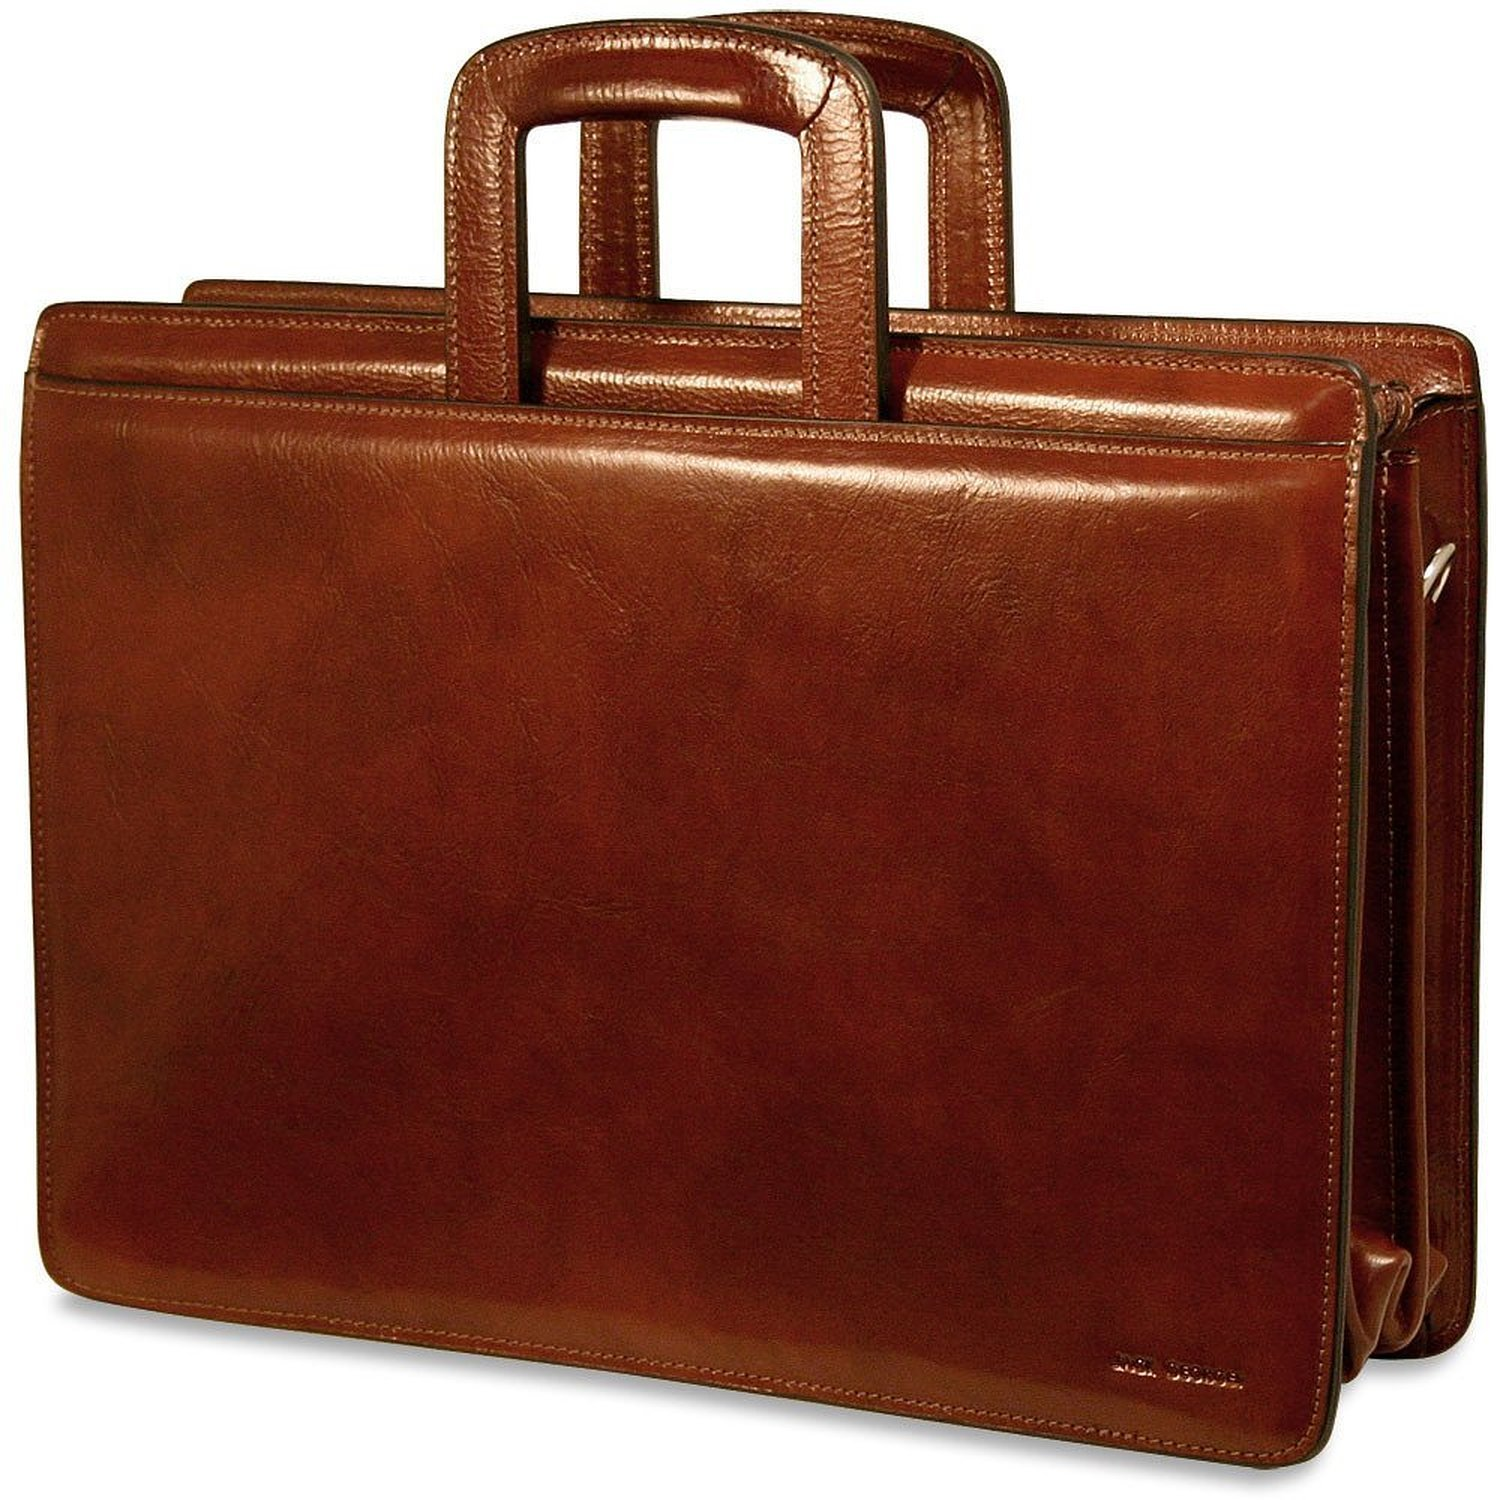 48c98cffd8c9 Cheap Hard Top Briefcase, find Hard Top Briefcase deals on line at ...